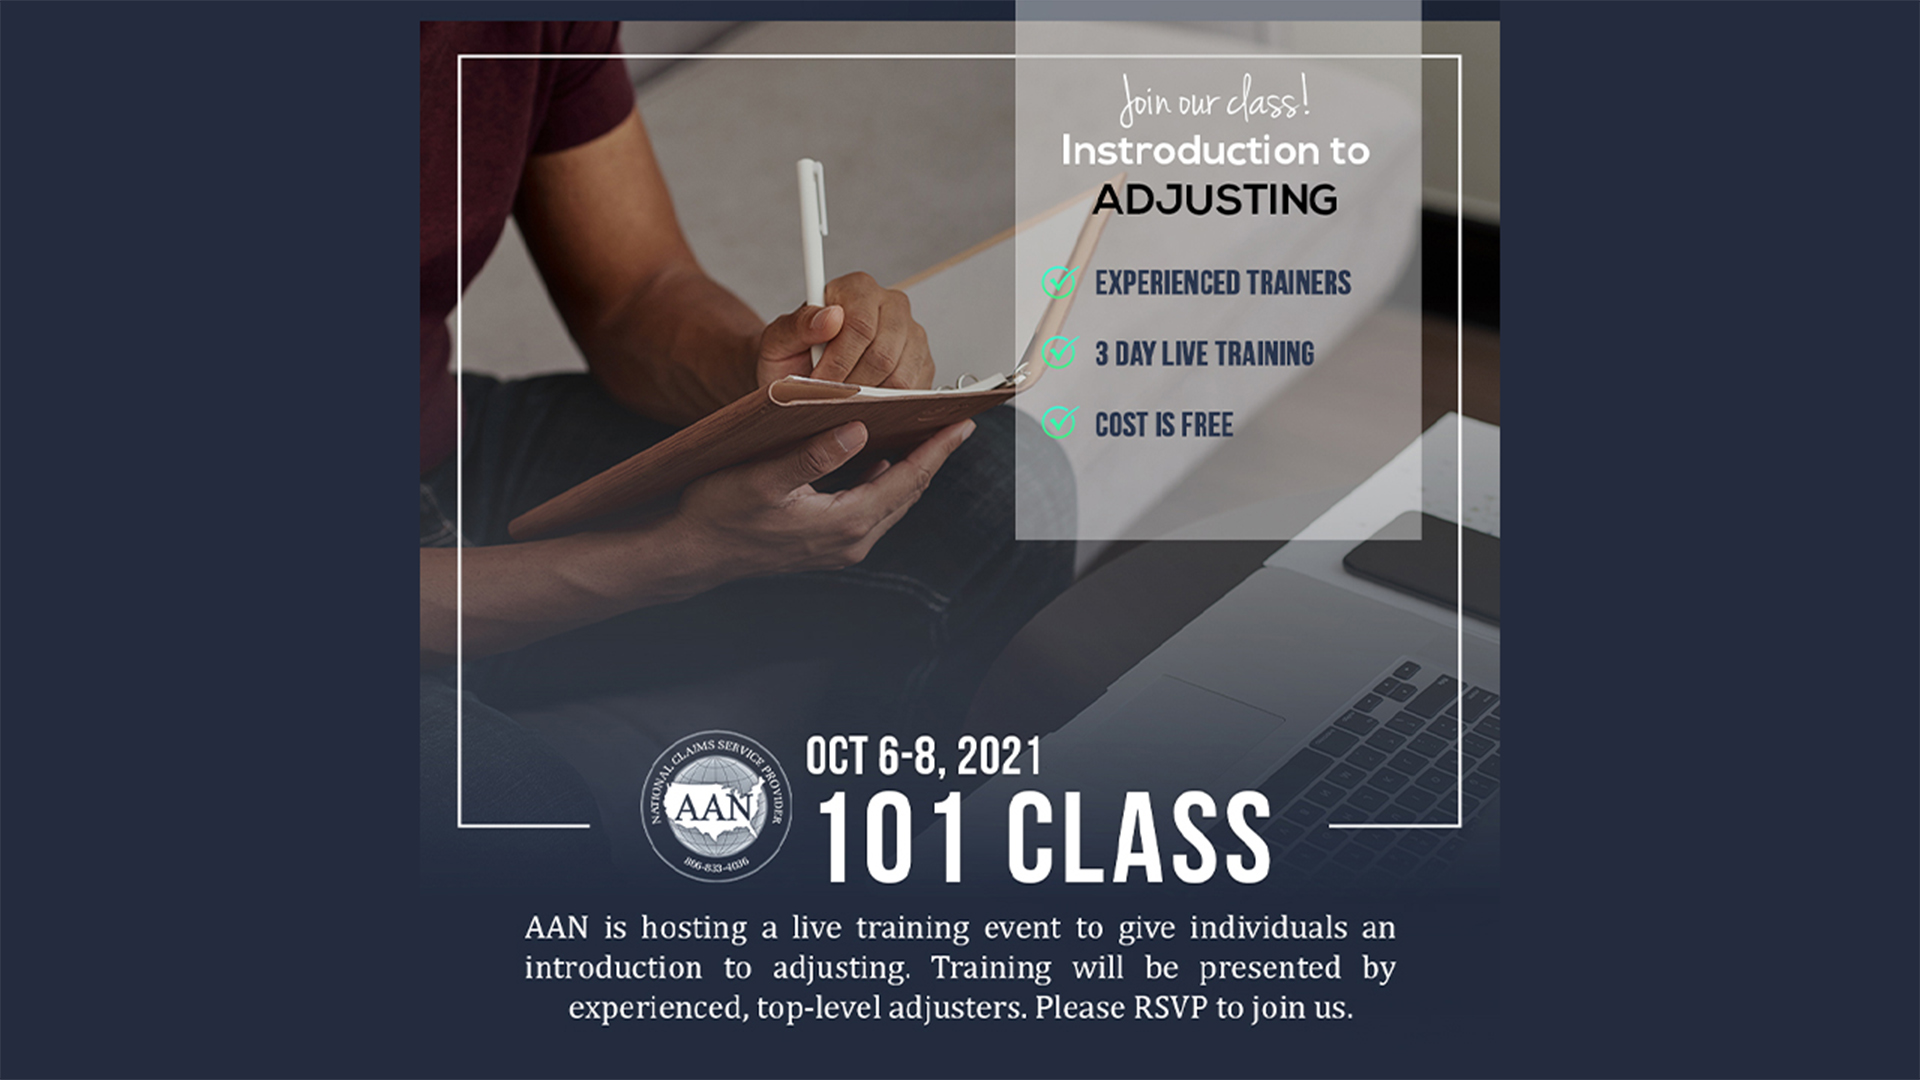 Join our live 101 Class Introduction to Adjusting